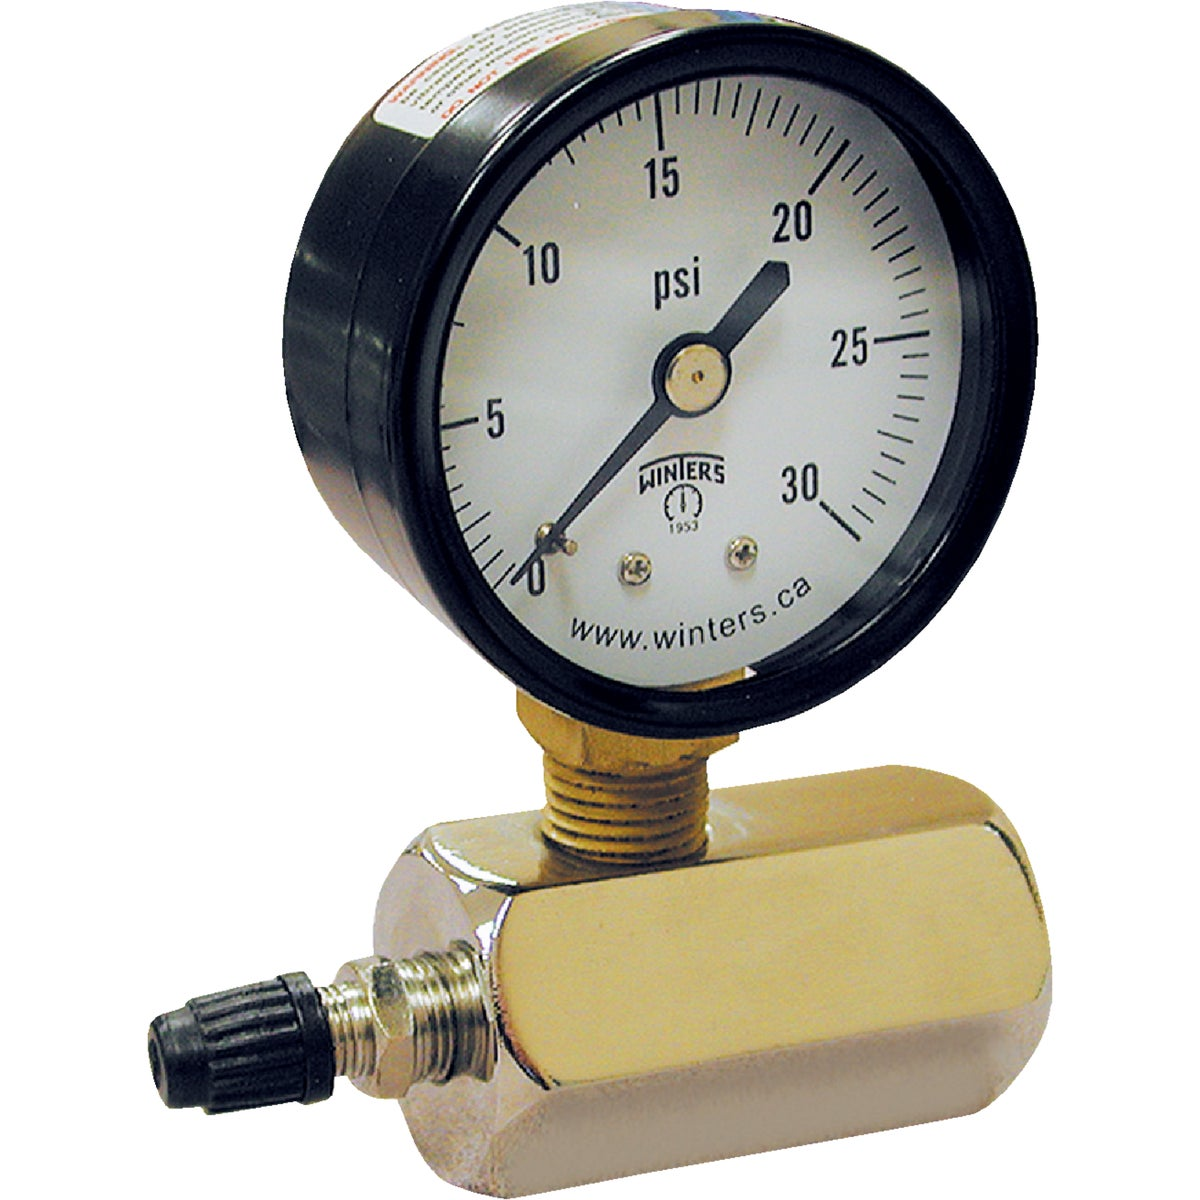 GAS TEST GAUGE - G64-015 by Jones Stephens Corp